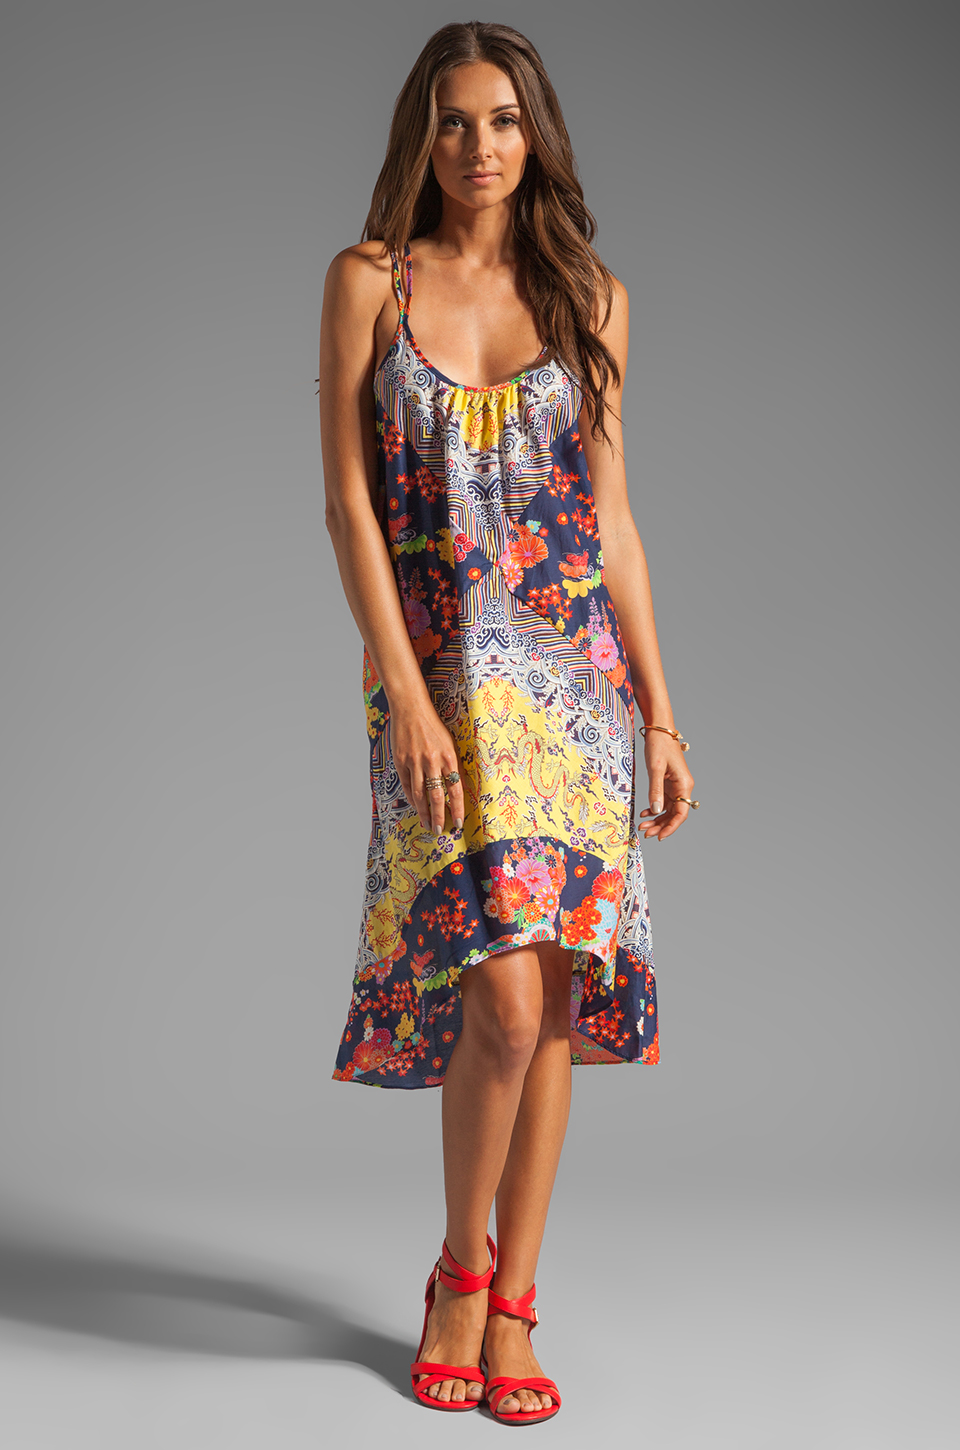 Nanette Lepore Tatsuyama Cover Dress in Multi